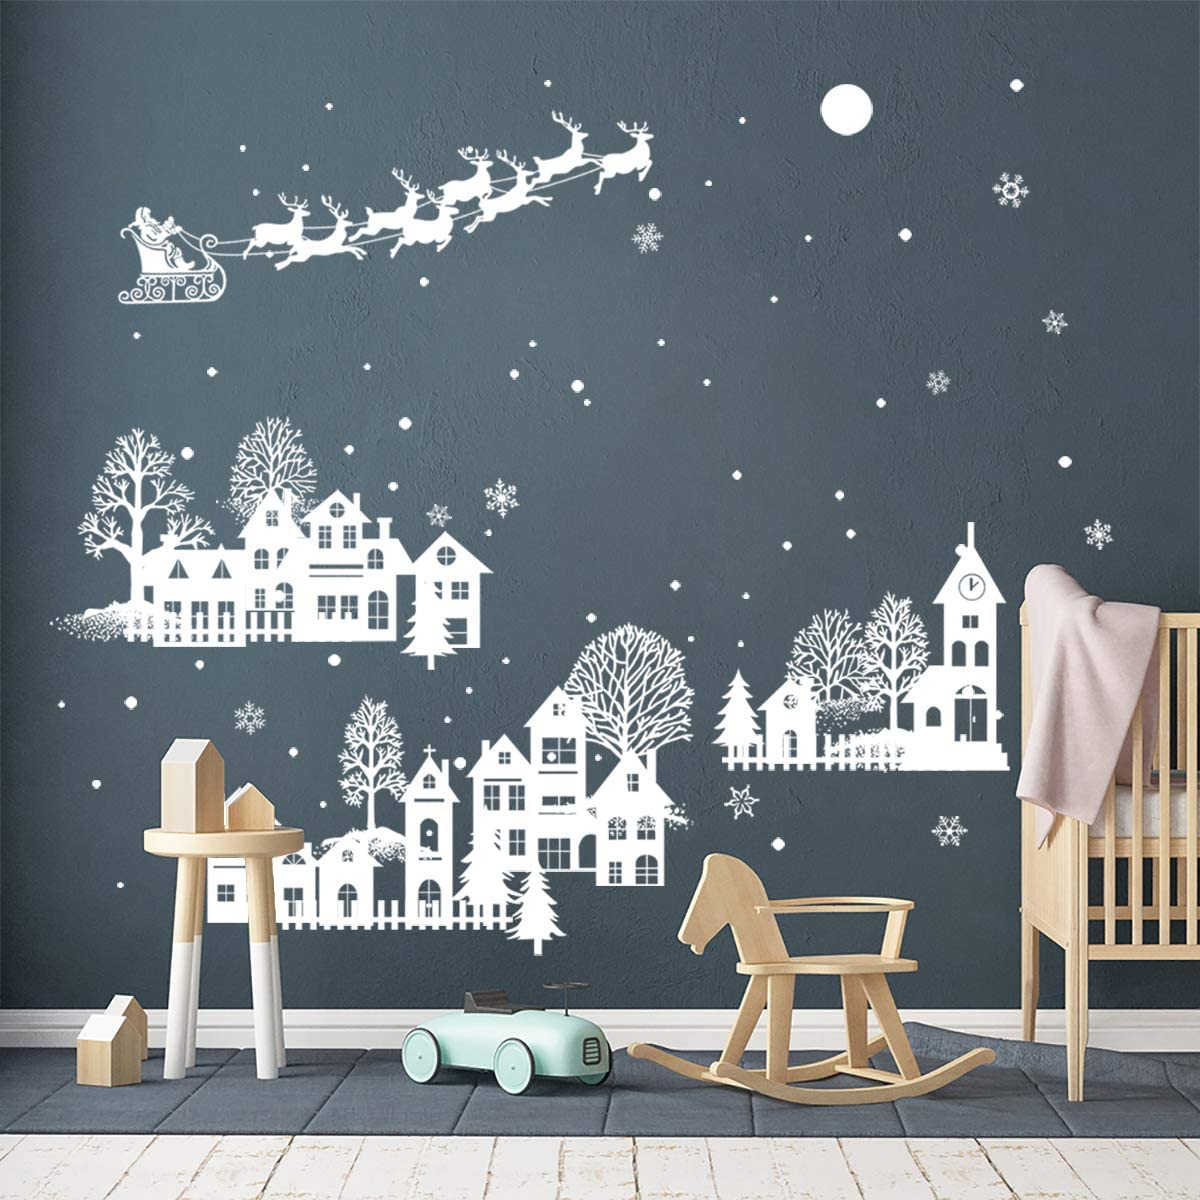 ufengke Christmas Night White Silhouette Wall Stickers Santa Claus Snowflakes Window Wall Decals for Shop Home Decor Merry Christmas Decorations